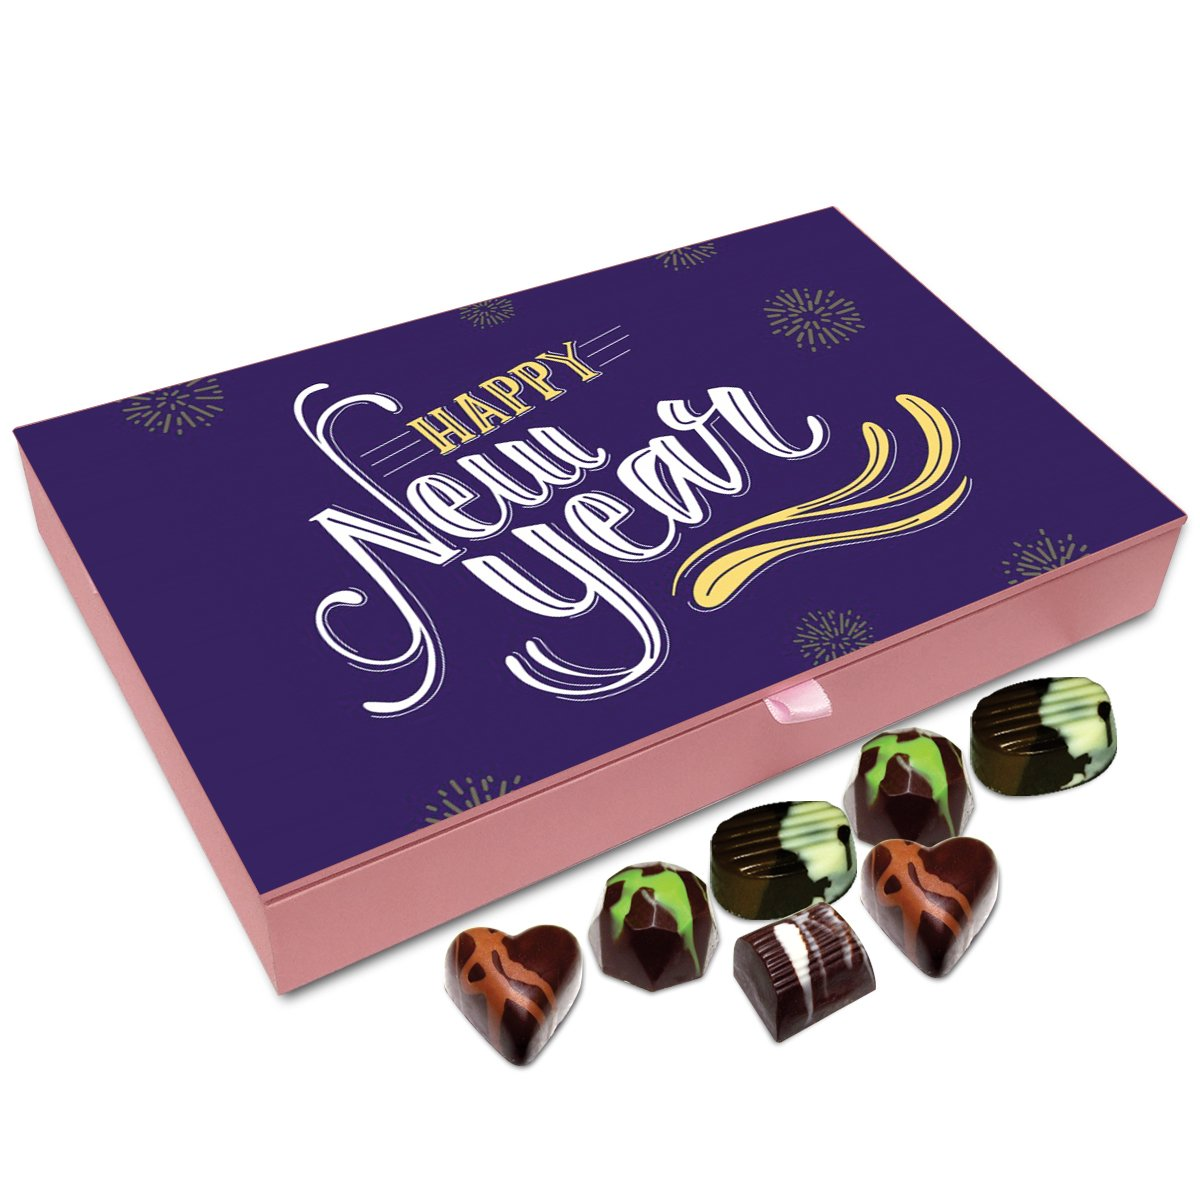 Chocholik New Year Chocolate Box – Happy New Year to All My Sweet Friends Chocolate Box – 12pc